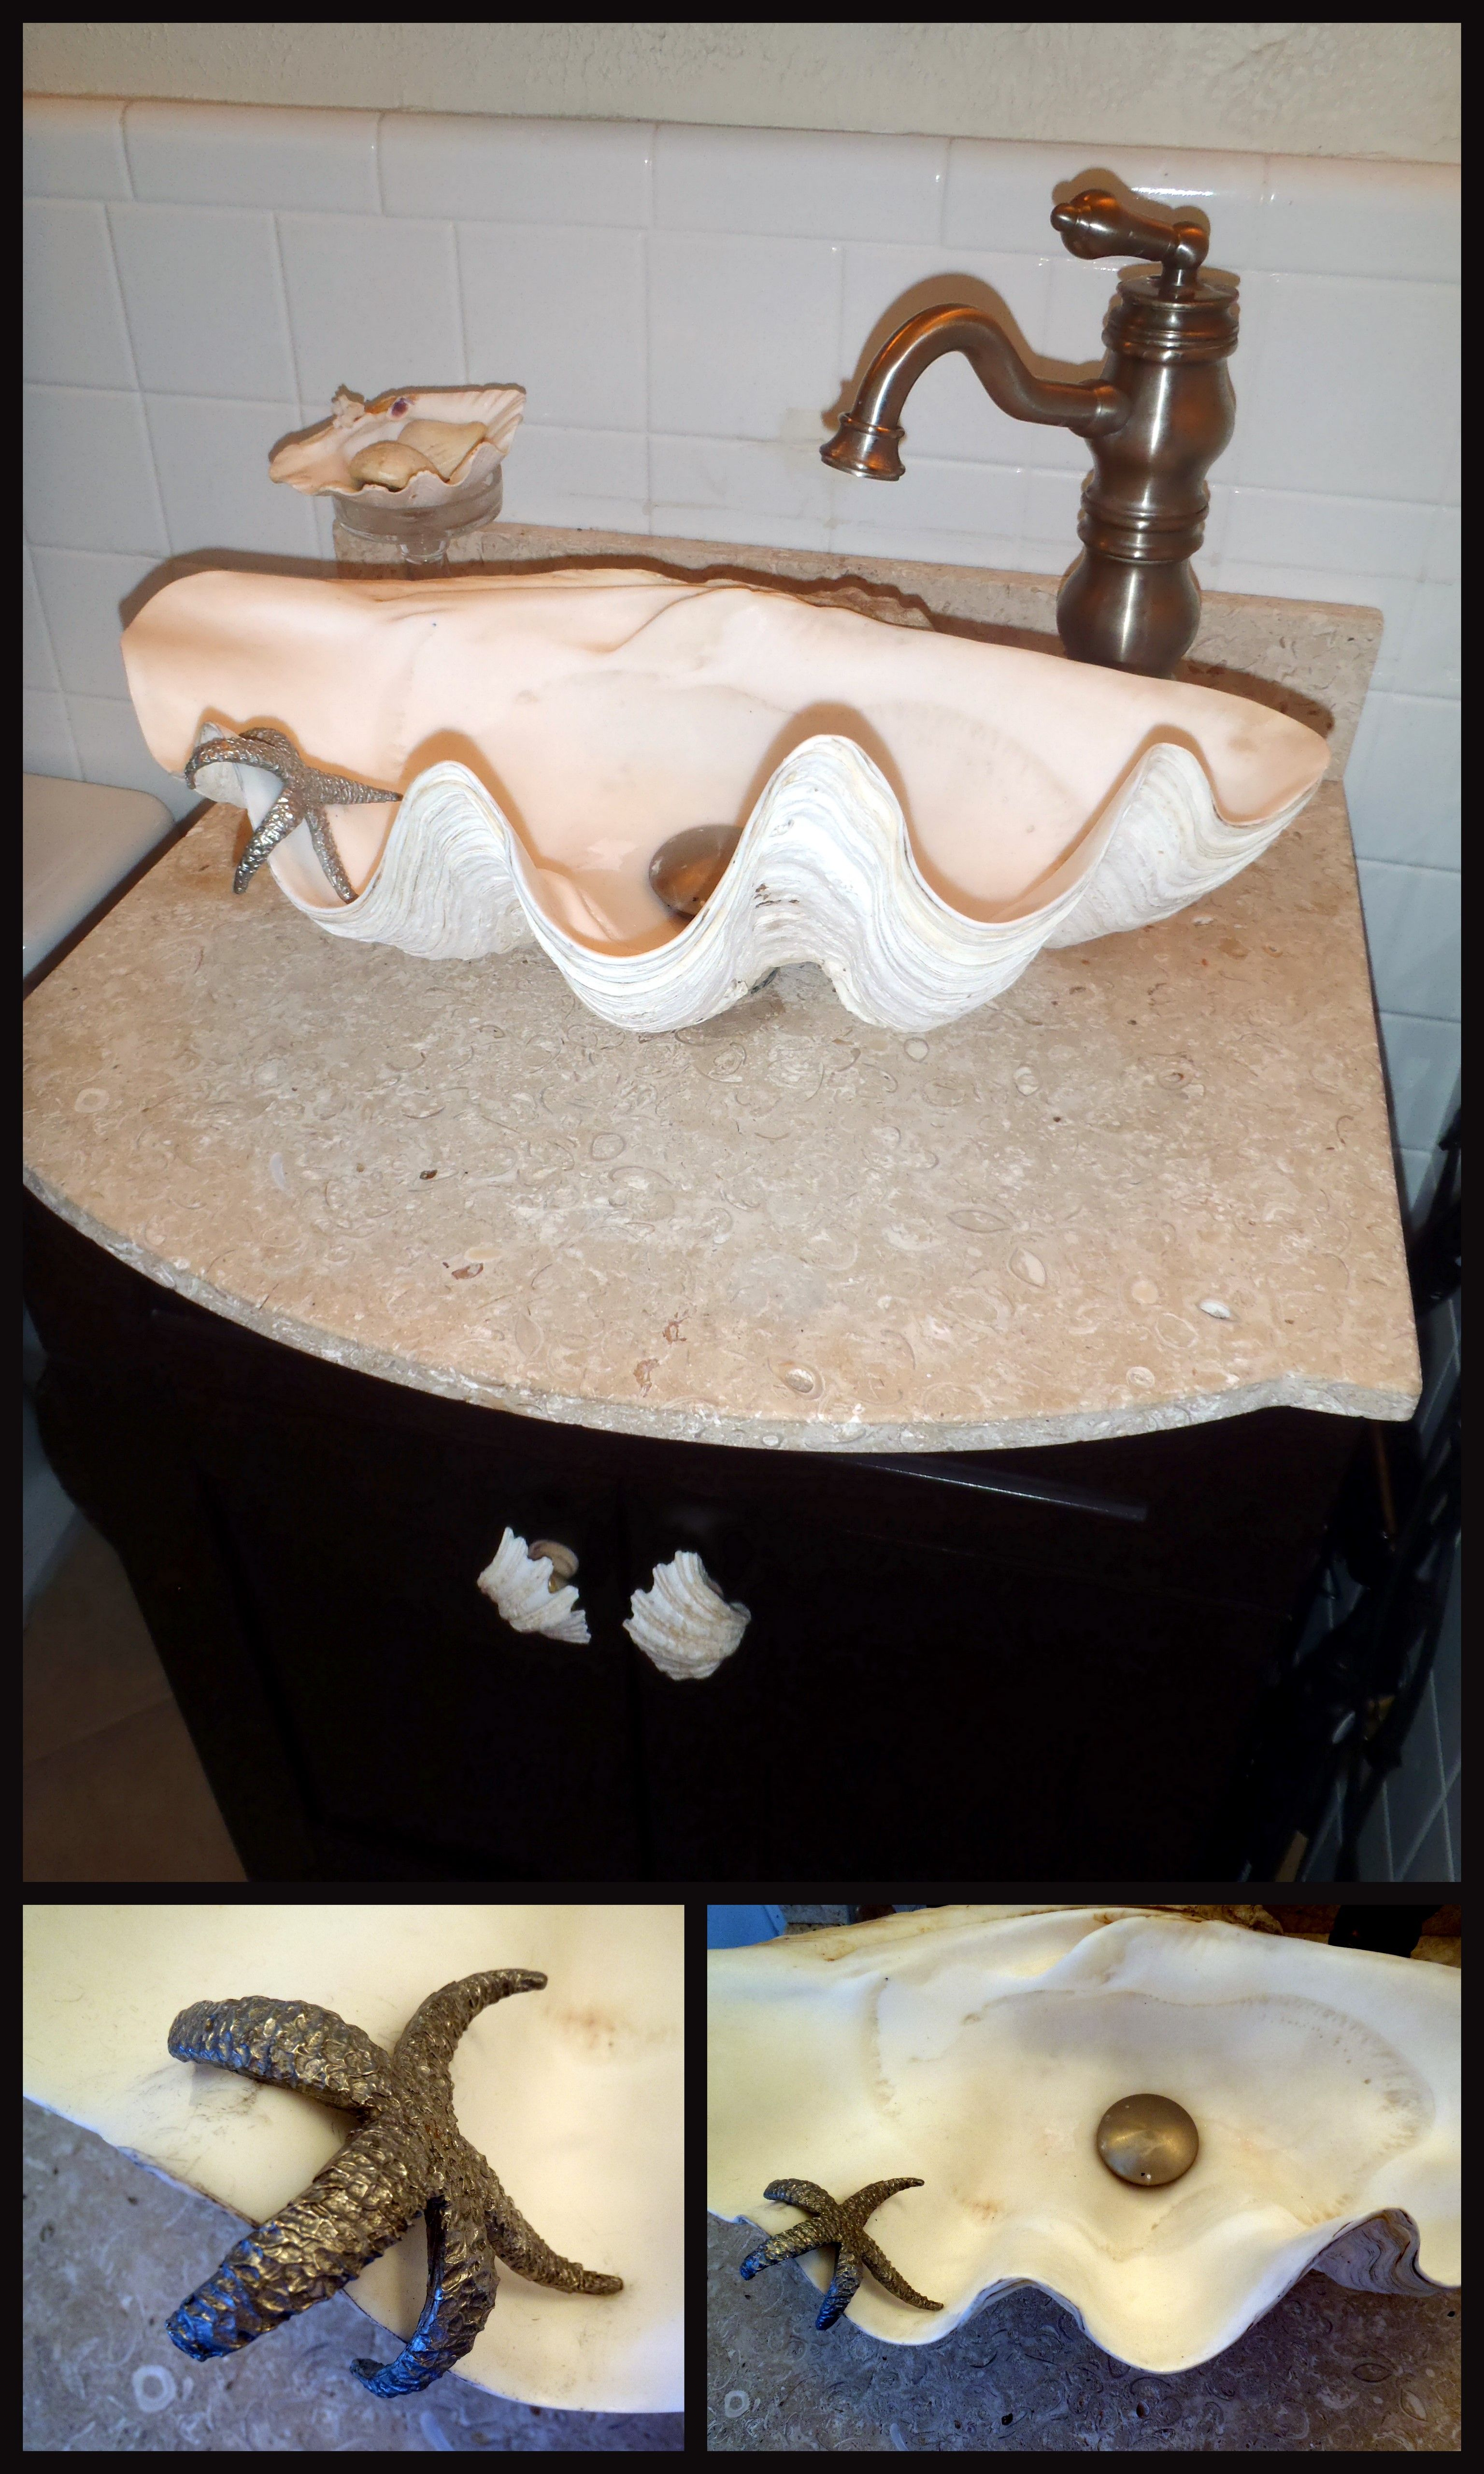 Giant Clam Shell Sink With Clam Shell Soap Holder Bathroom